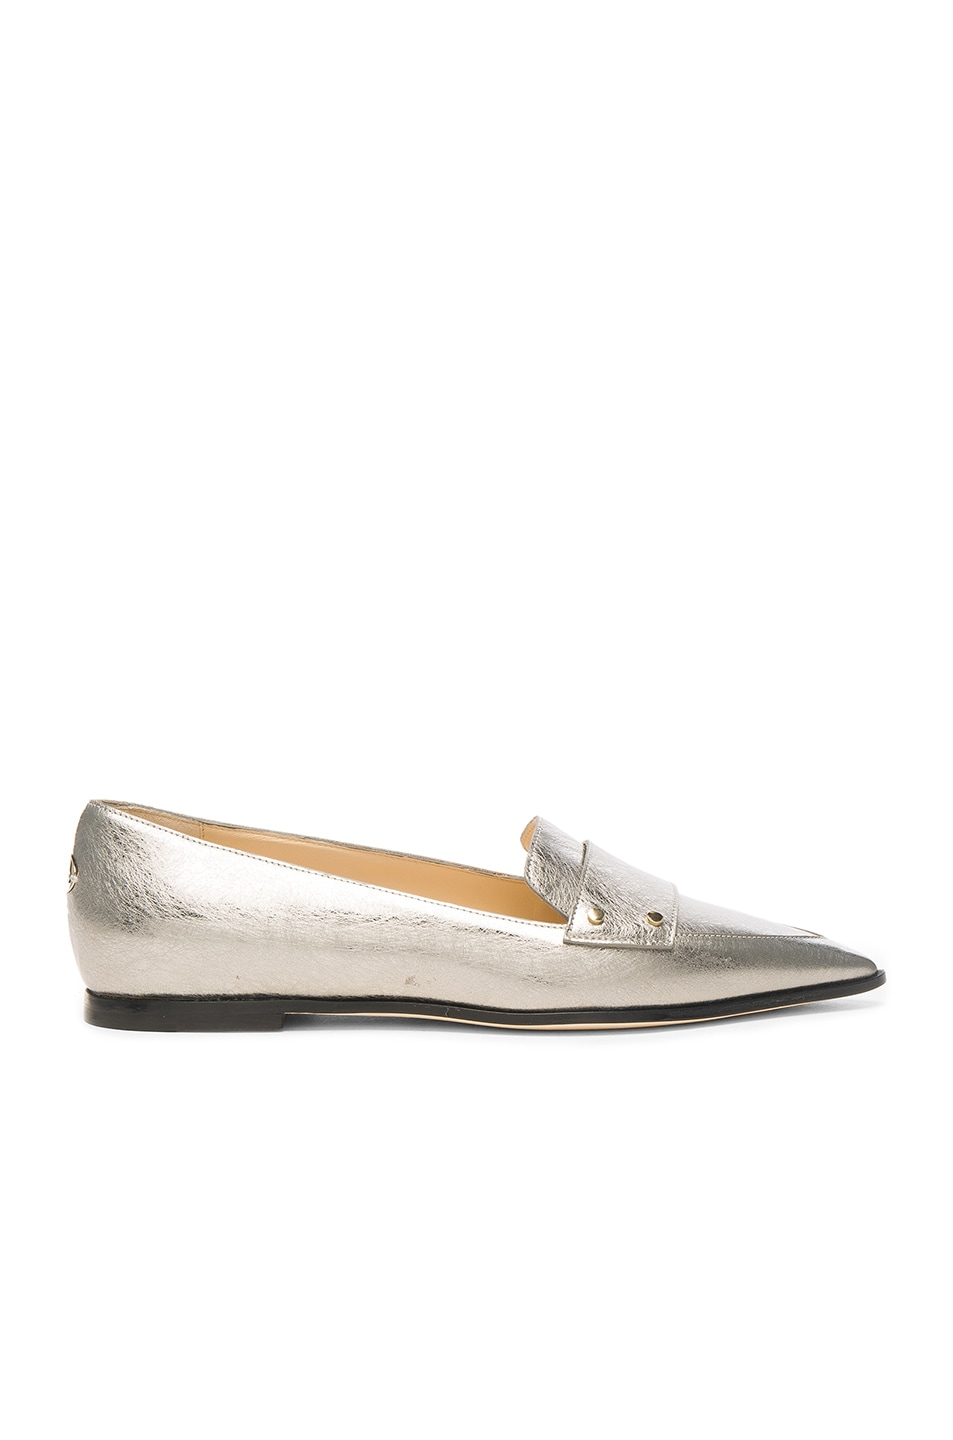 Image 1 of Jimmy Choo Leather Gia Flats in Vintage Silver